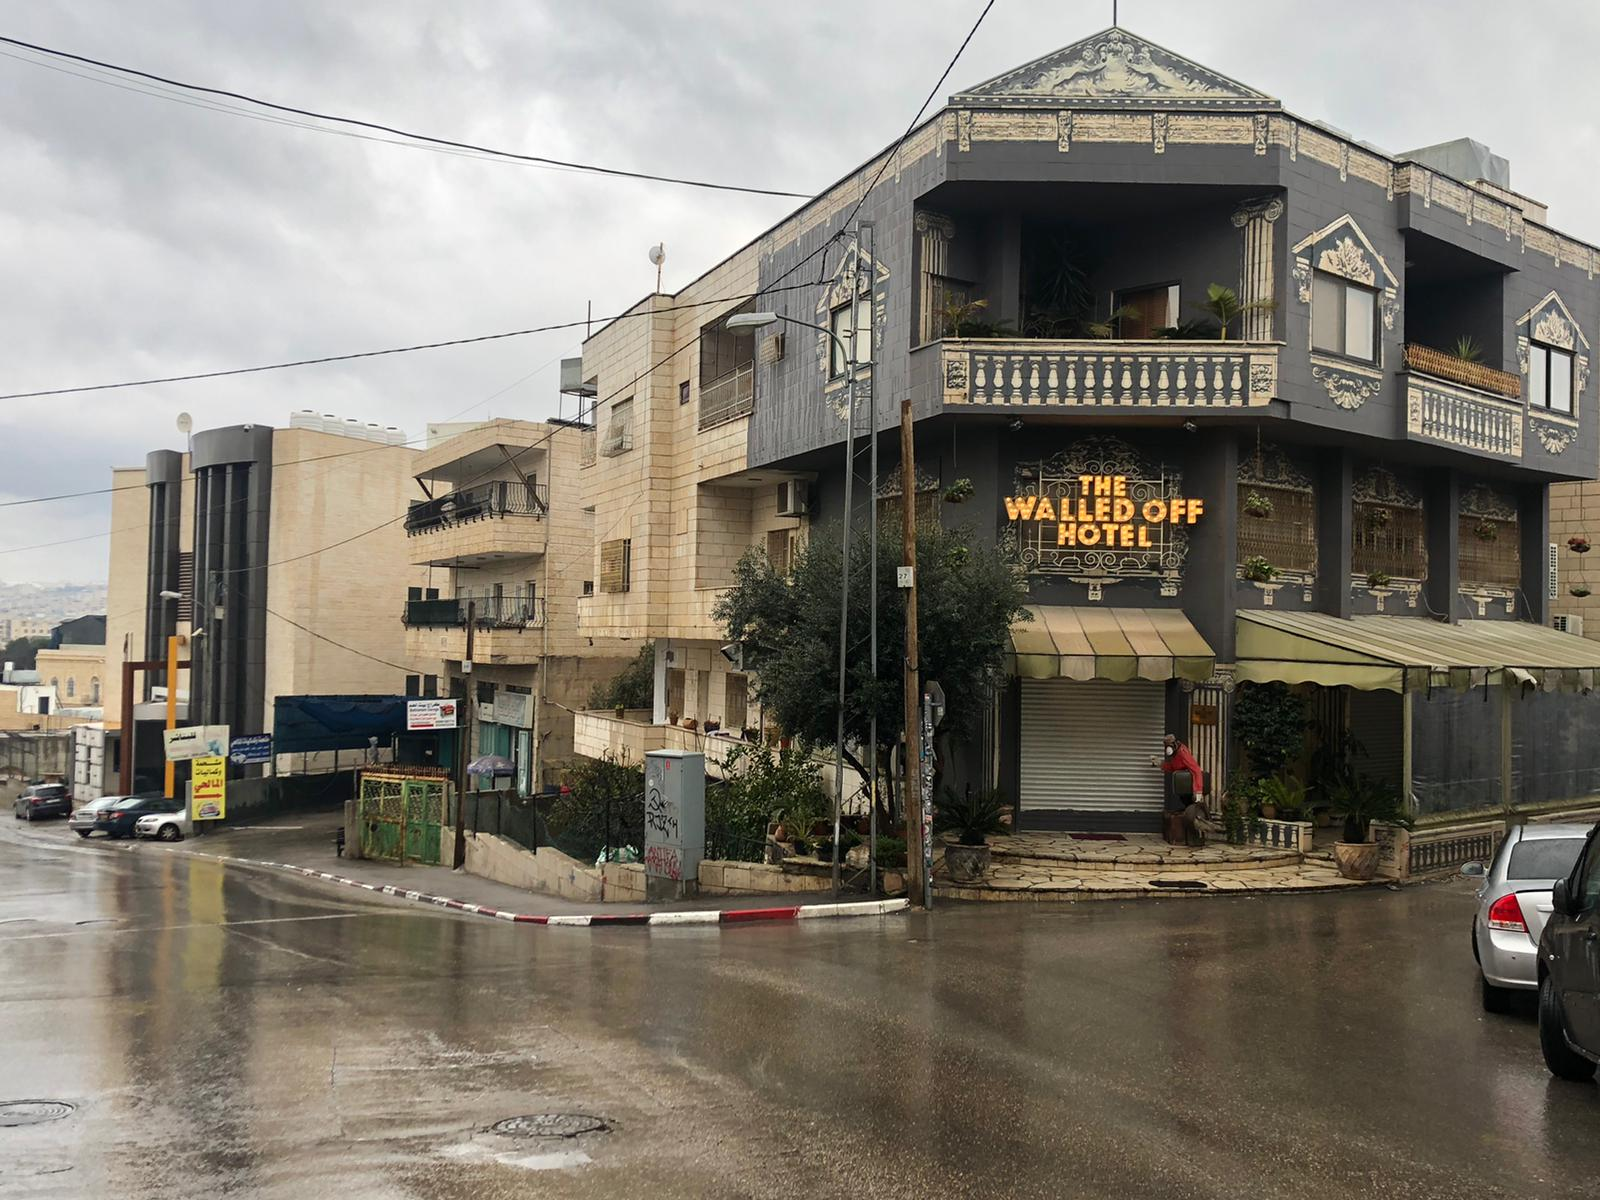 """The streets of Bethlehem are deserted and the shutters are down at """"The Walled Off Hotel,"""" which lies in the shadow of the wall erected by Israel to separate it from the Palestinian territories."""